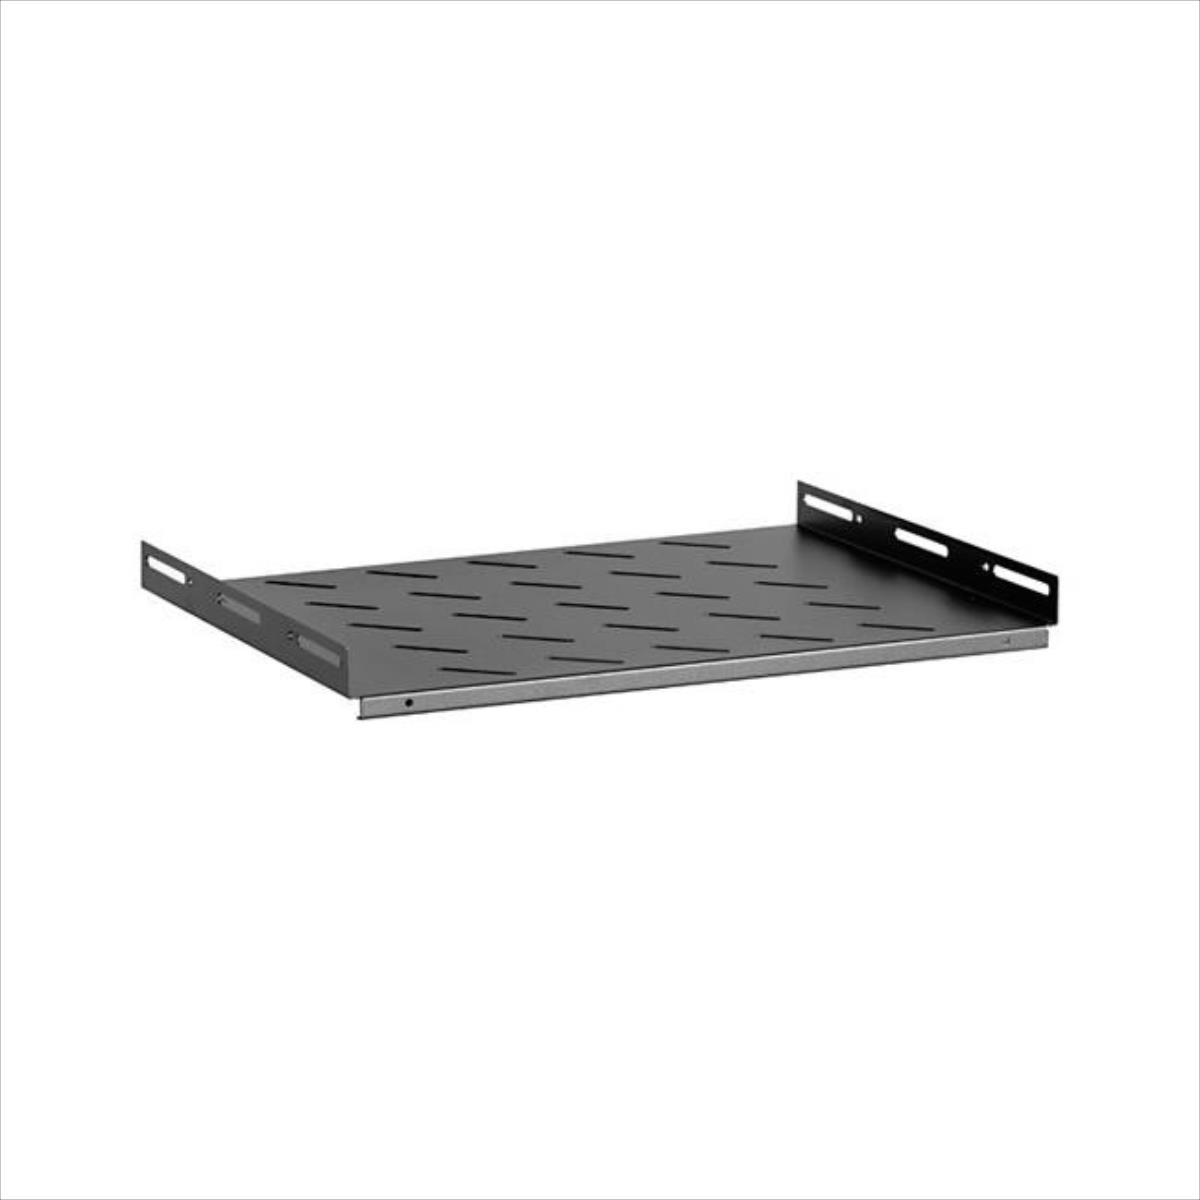 Linkbasic fixed shelf 350mm for 600mm depth 19'' rack cabinets Serveru aksesuāri